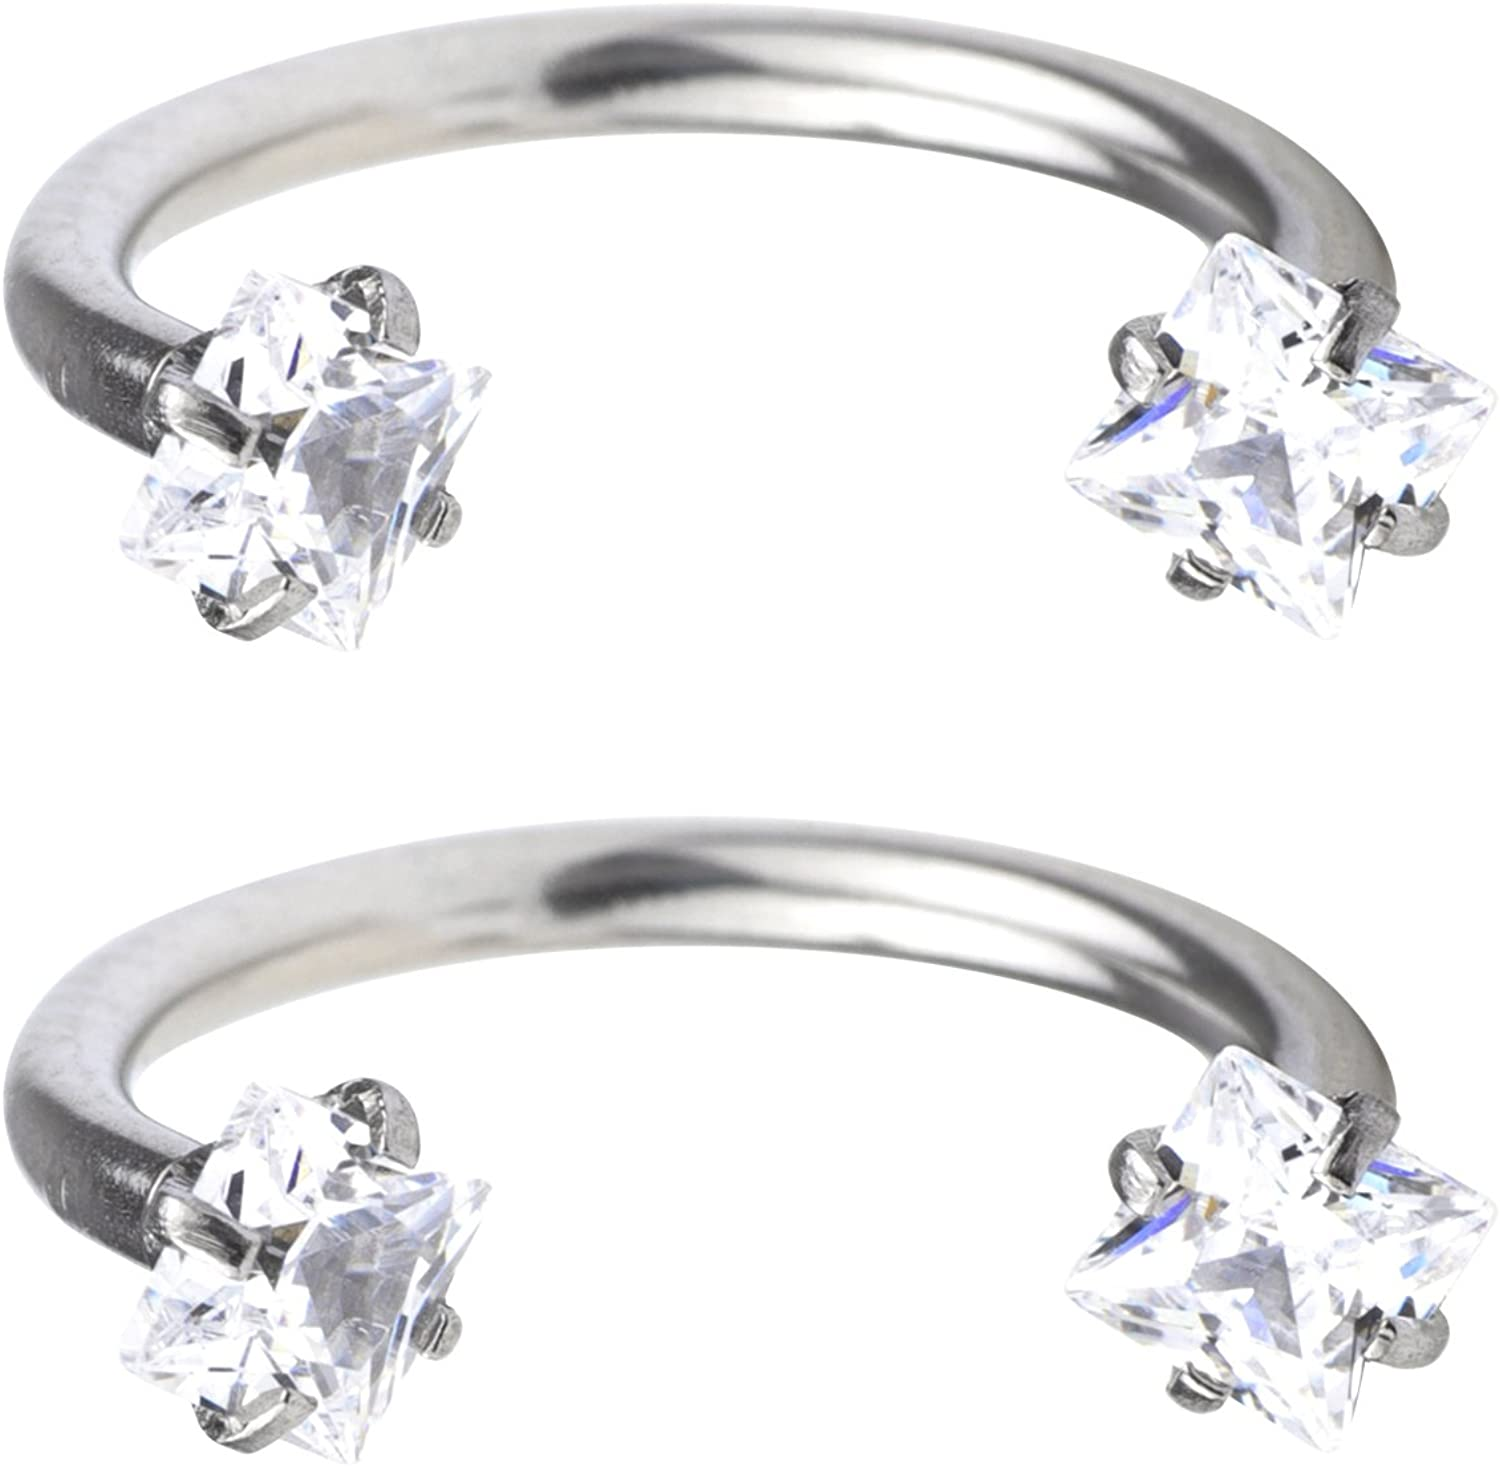 FORYOU FASHION Surgical Steel 16G 3mm Clear Cubic Zirconia Horseshoe Hoop Multi-Functional Captive Ring for Nose Daith Lip Eyebrow Nipple Ear Cartilage Helix Septum 8mm